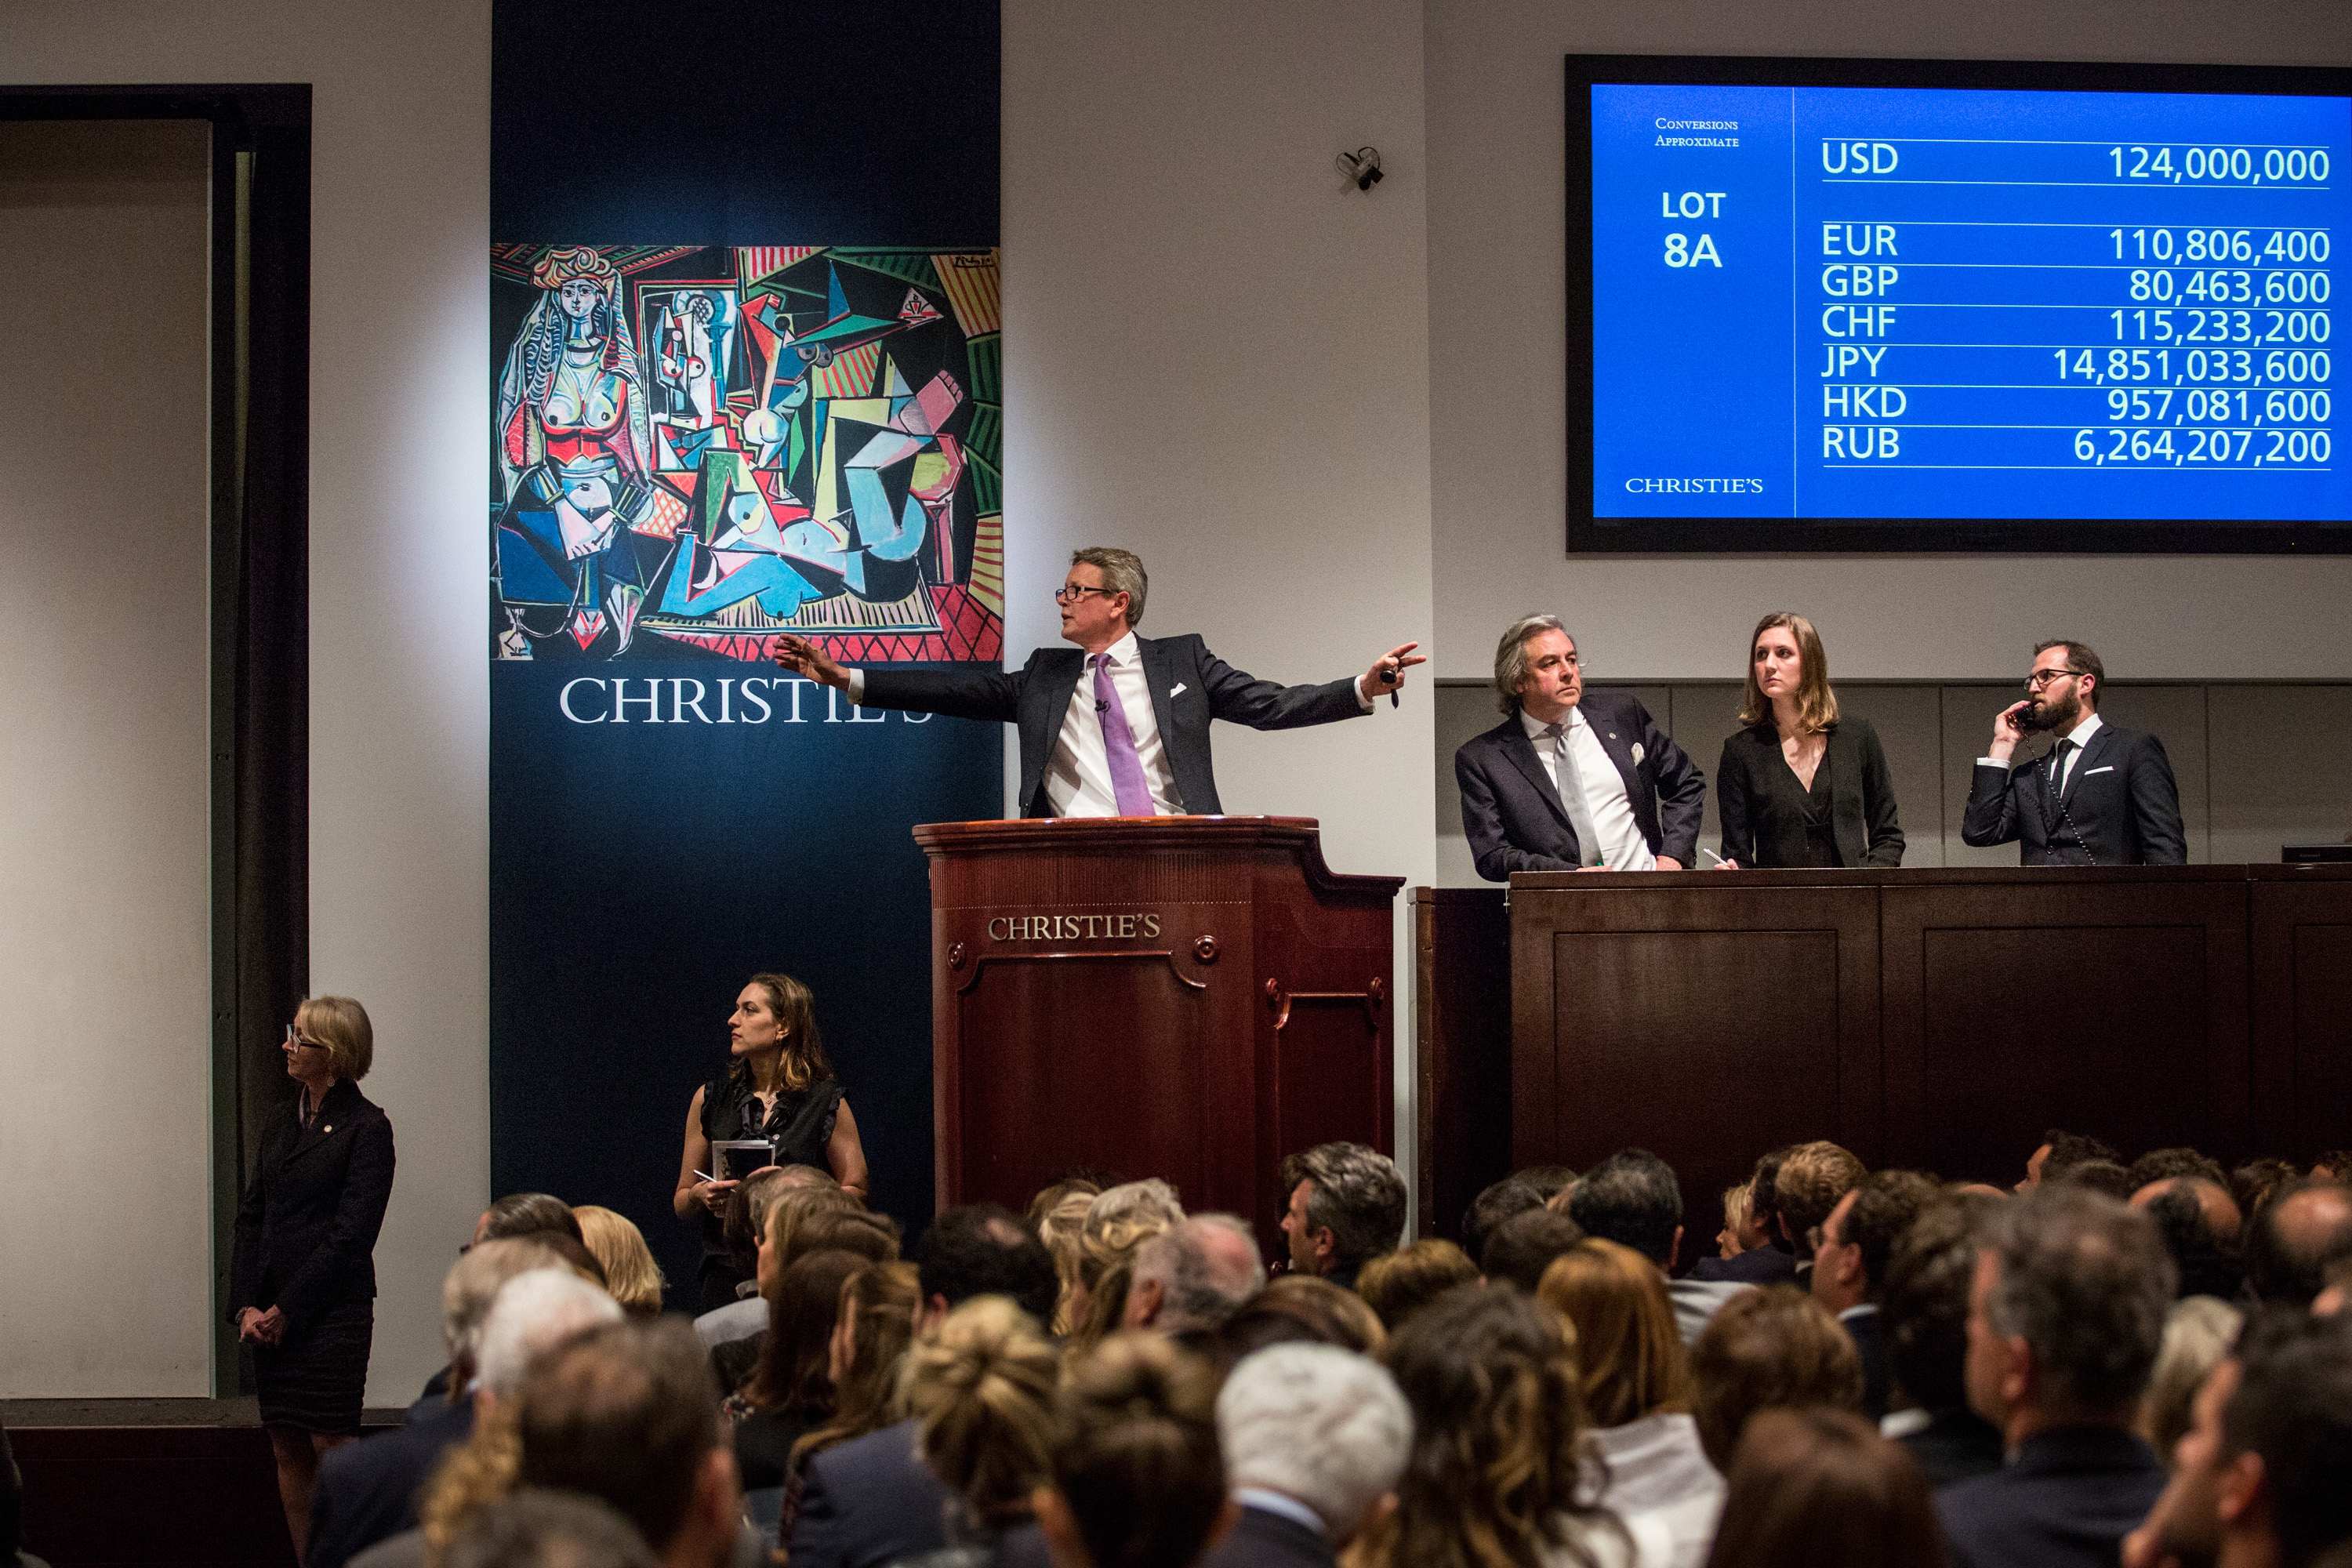 Picasso painting sells at Sotheby's